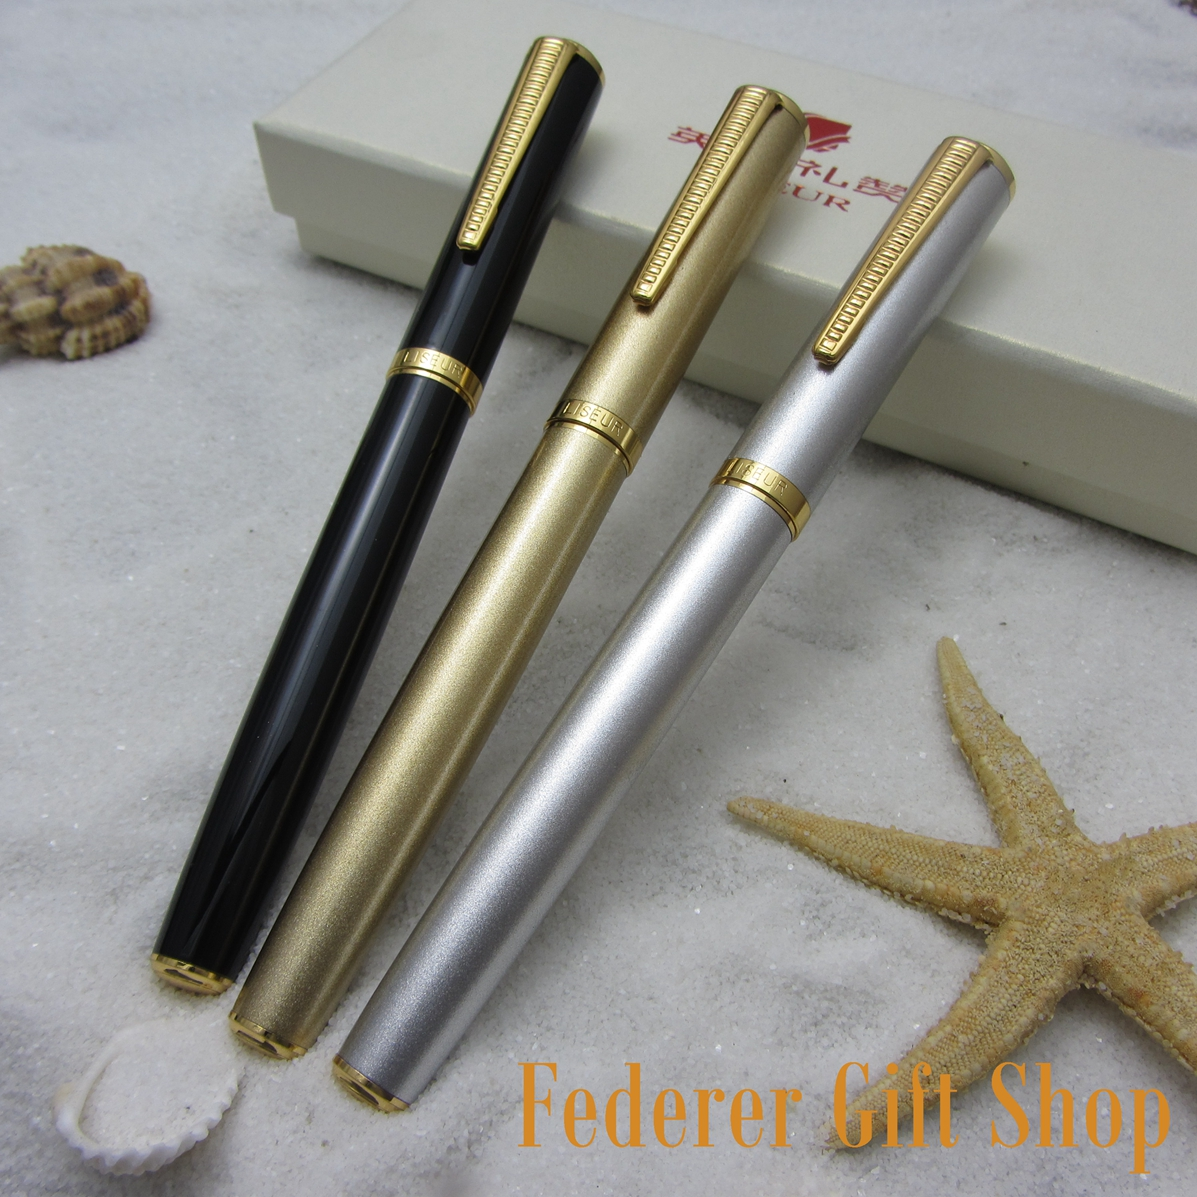 3 Color Set LISEUR L33 Metal Case Fountain Pen Unique Nib Gift Ink Pen3 Color Set LISEUR L33 Metal Case Fountain Pen Unique Nib Gift Ink Pen